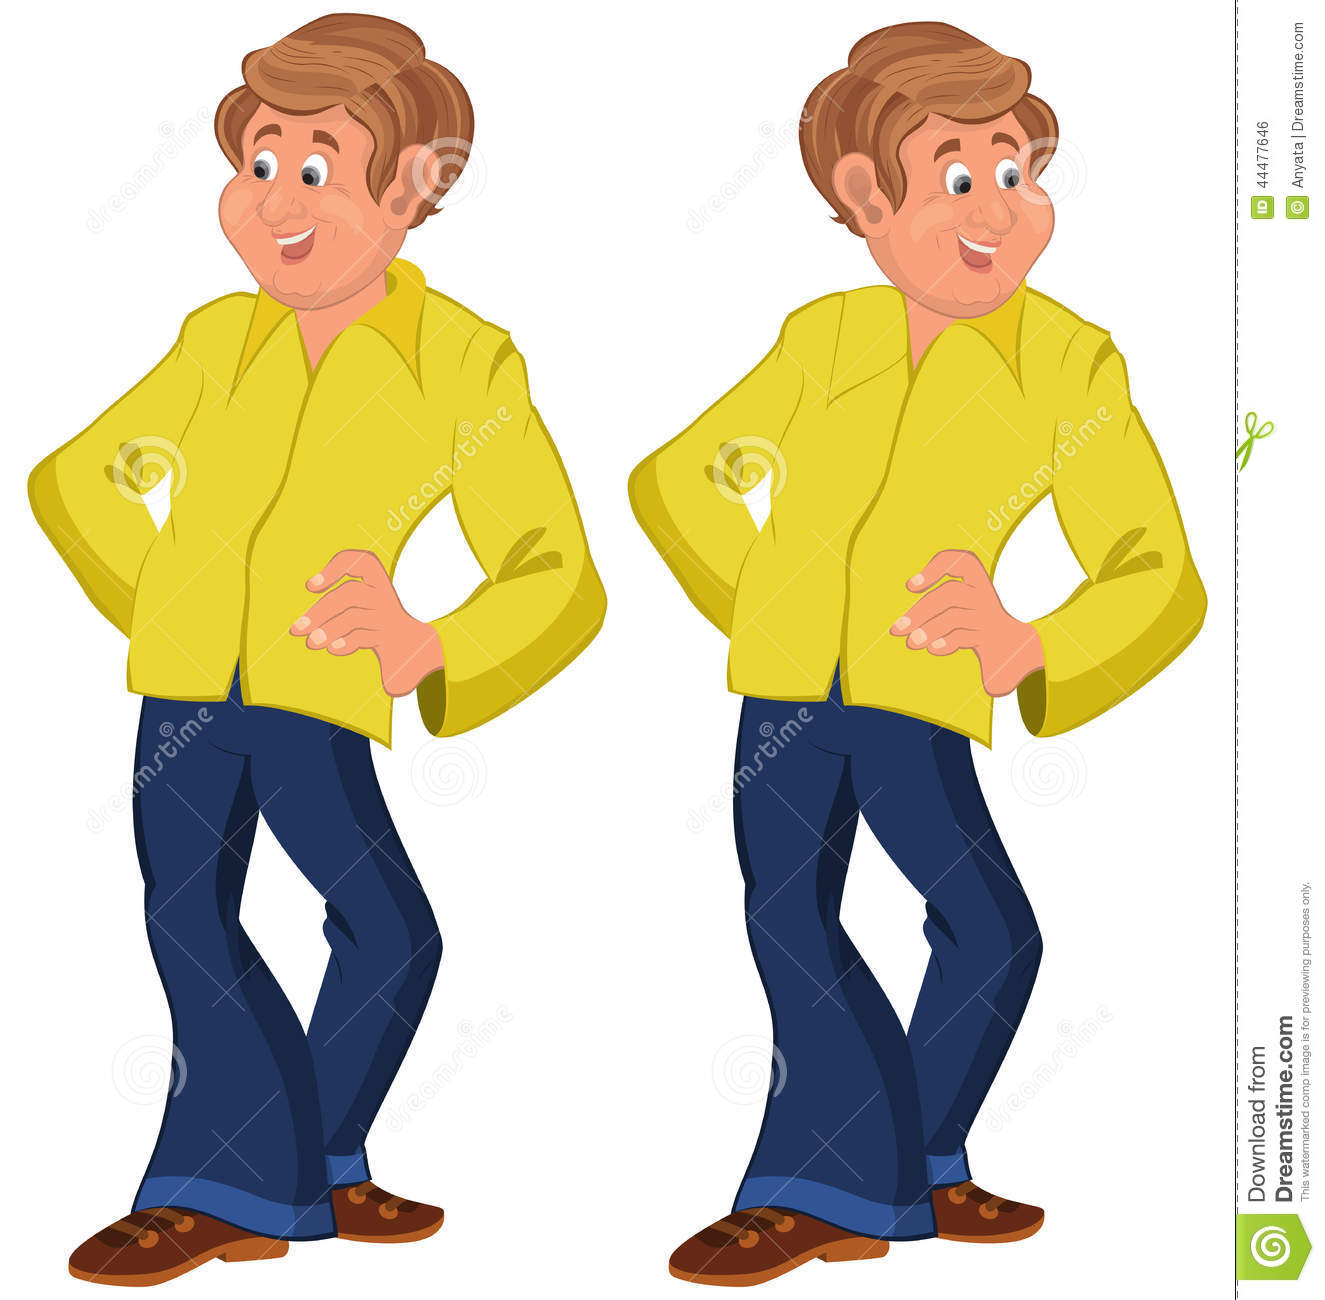 2 Male Cartoon Characters : Person standing girl cartoon imgkid the image